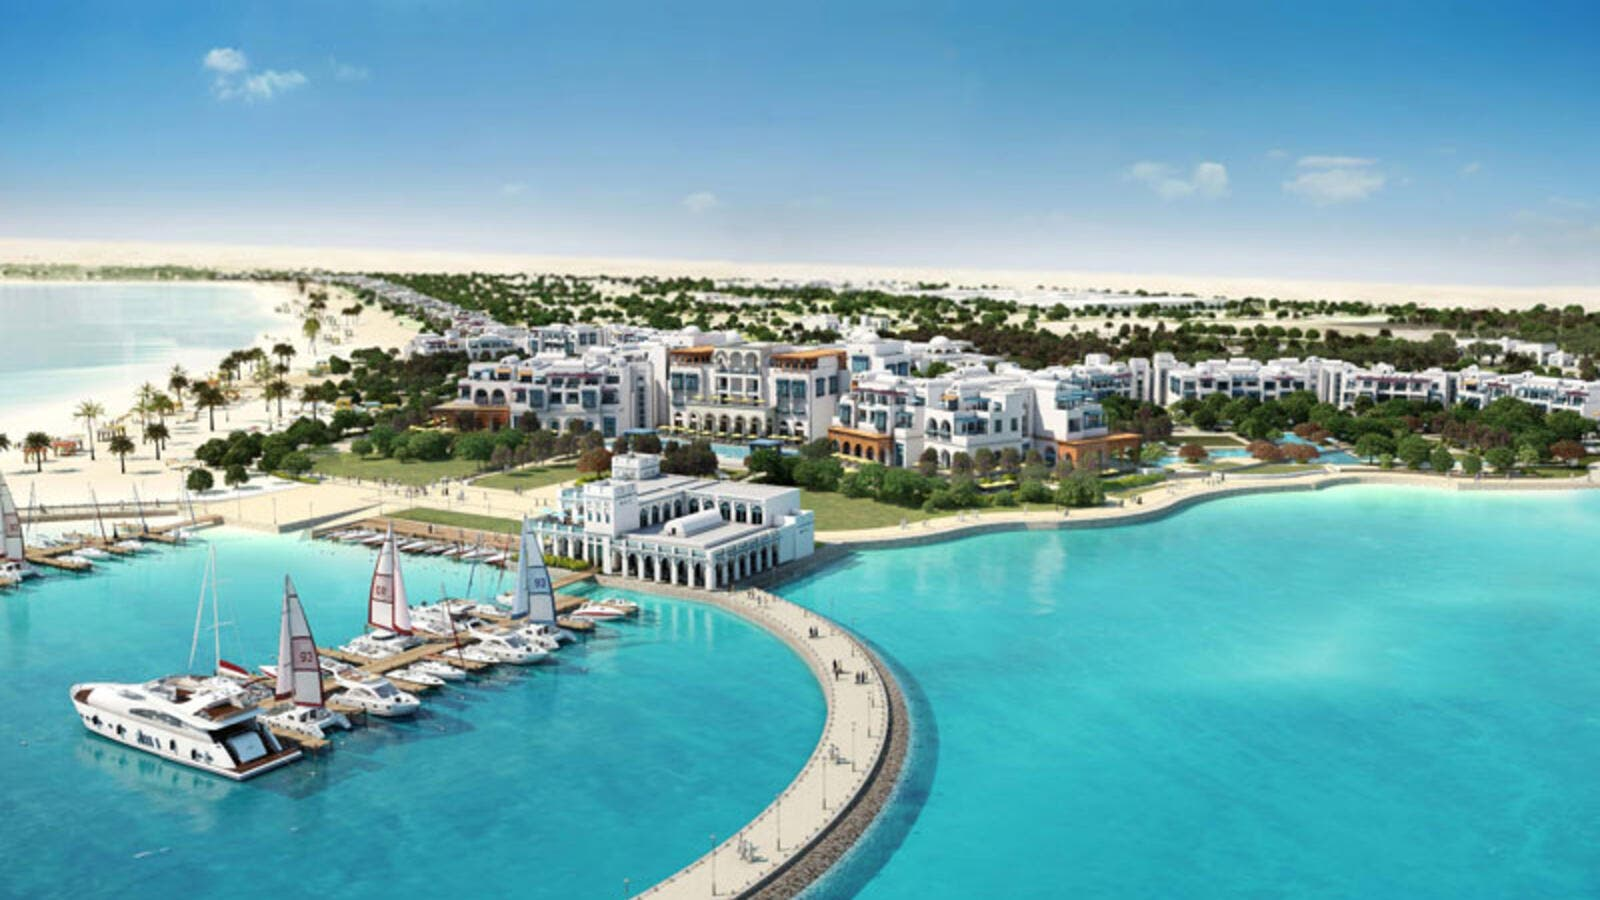 Hilton Salwa Beach Resort & Villas Hilton will include a water park, marina, dive center, cinemas, pools, health club, spa and retail space. (Hill International)